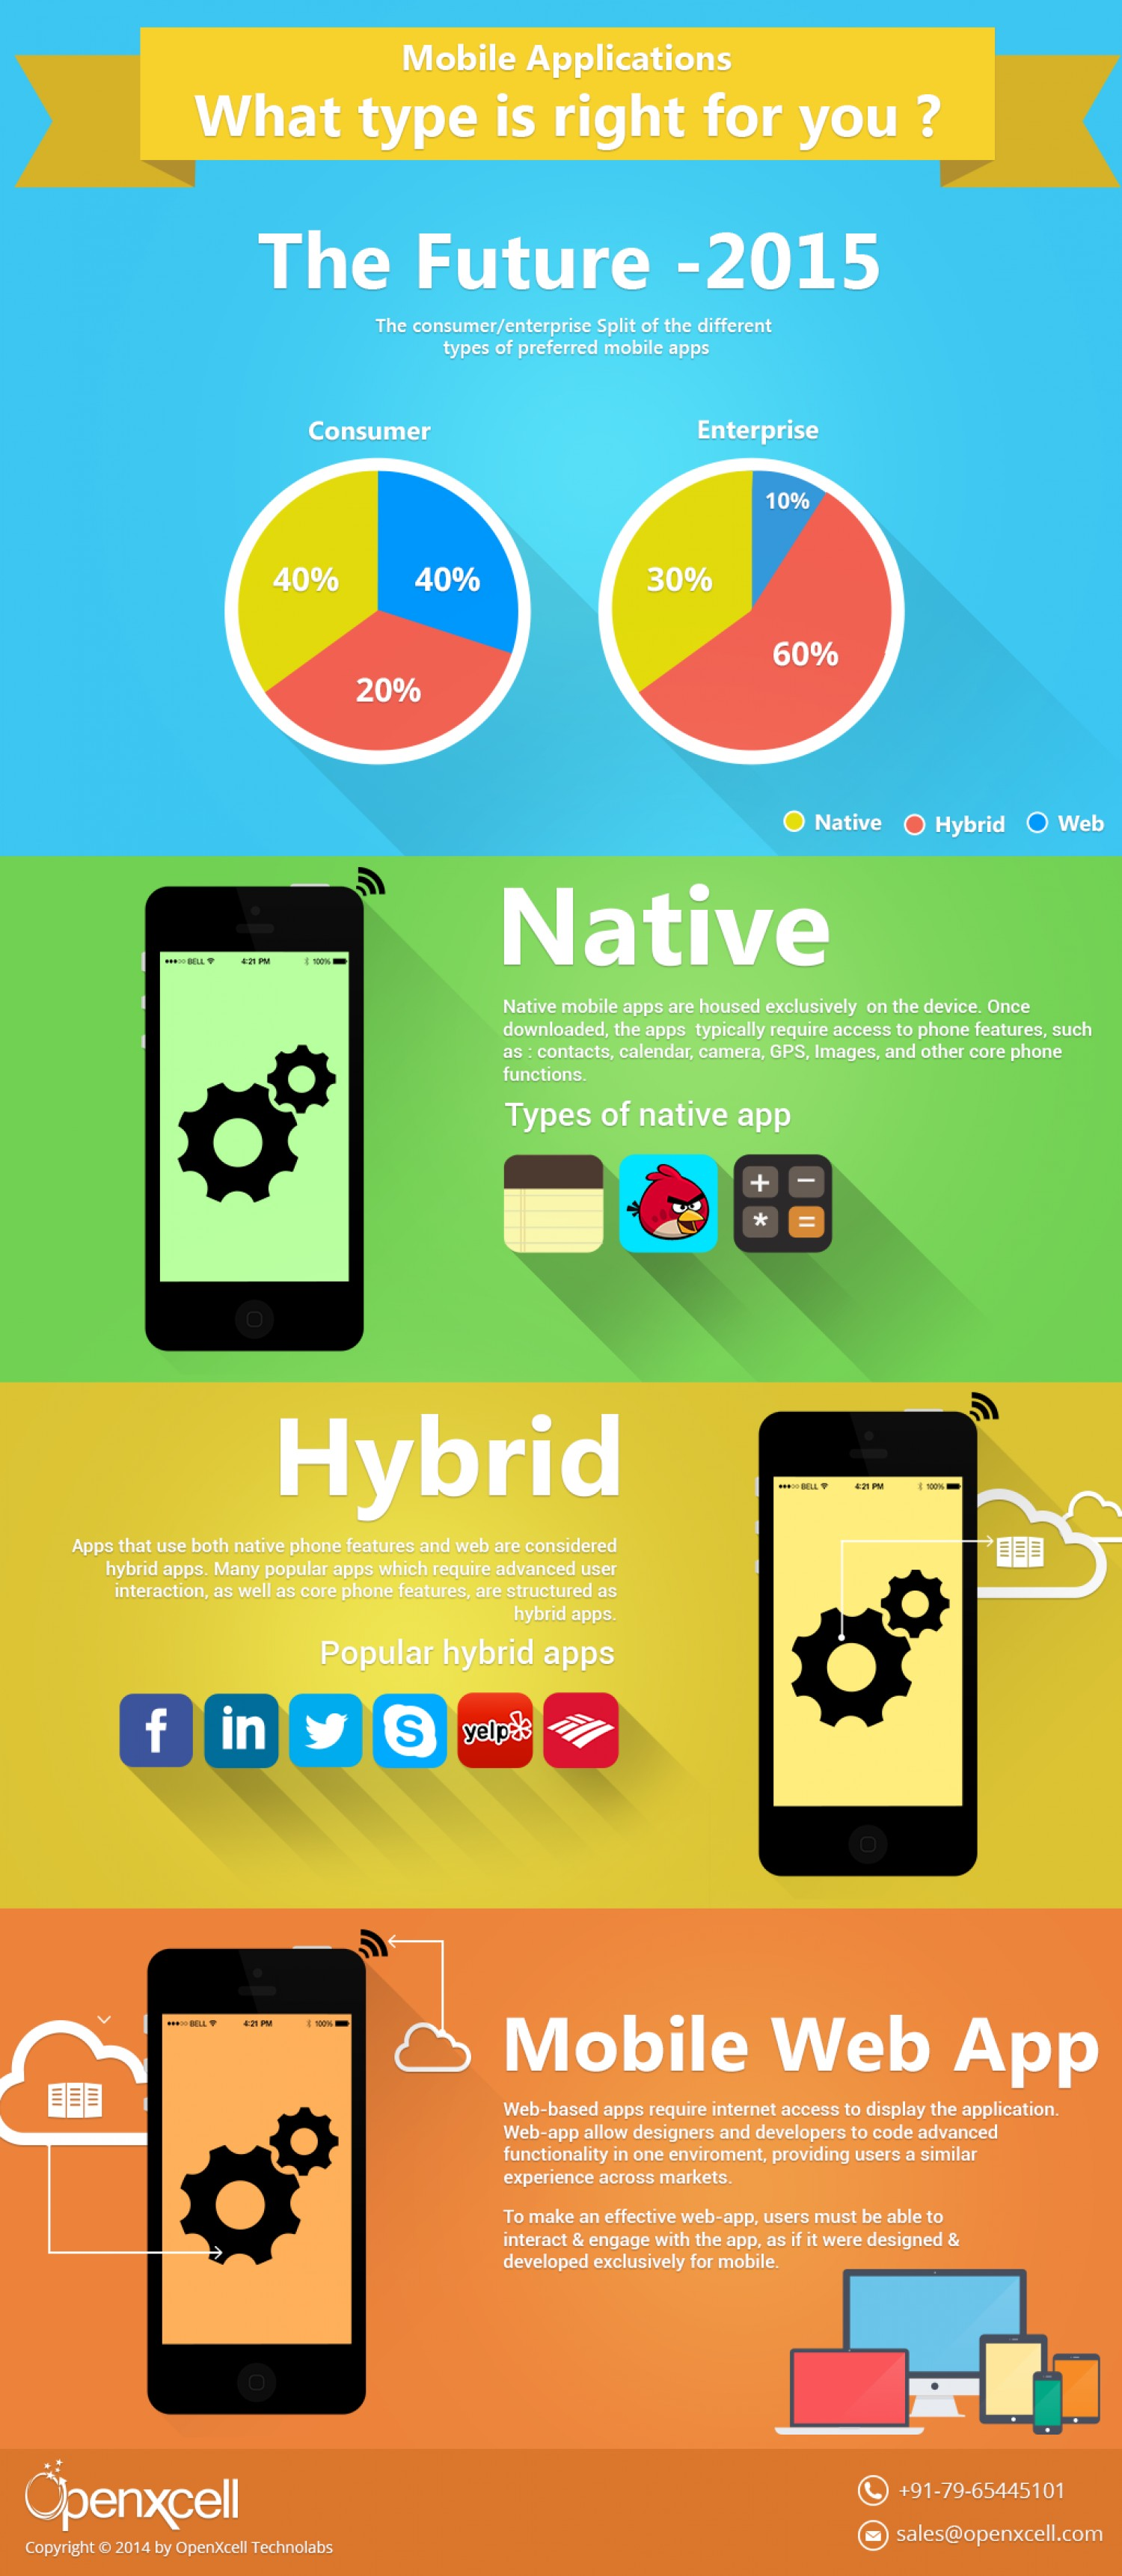 mobile-applications--what-type-is-right-for-you_53aa71e0a8e84_w1500